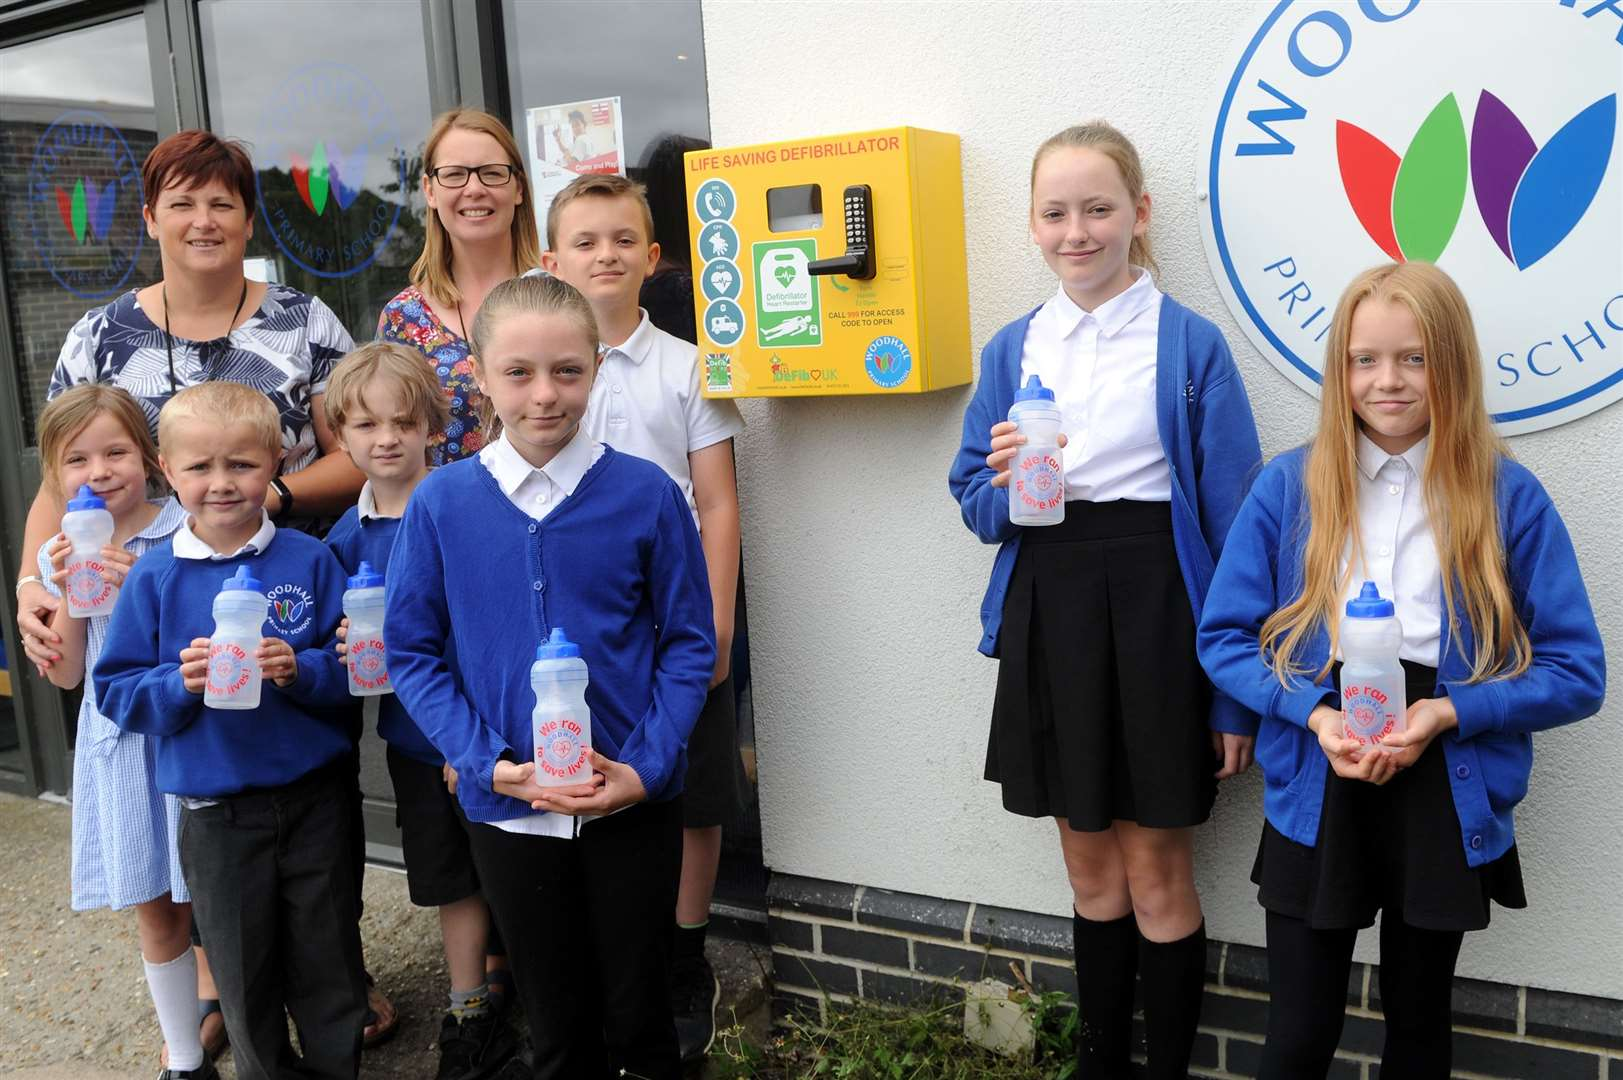 Pupils at Woodhall Primary School in Sudbury raised £8,000 to fund a defibrillator on the school premises, which is available for use by the whole community...Pictured: Pupils along with Sian Guyton (LSA) and Pamela Adams (HLTA)...PICTURE: Mecha Morton. (13842143)